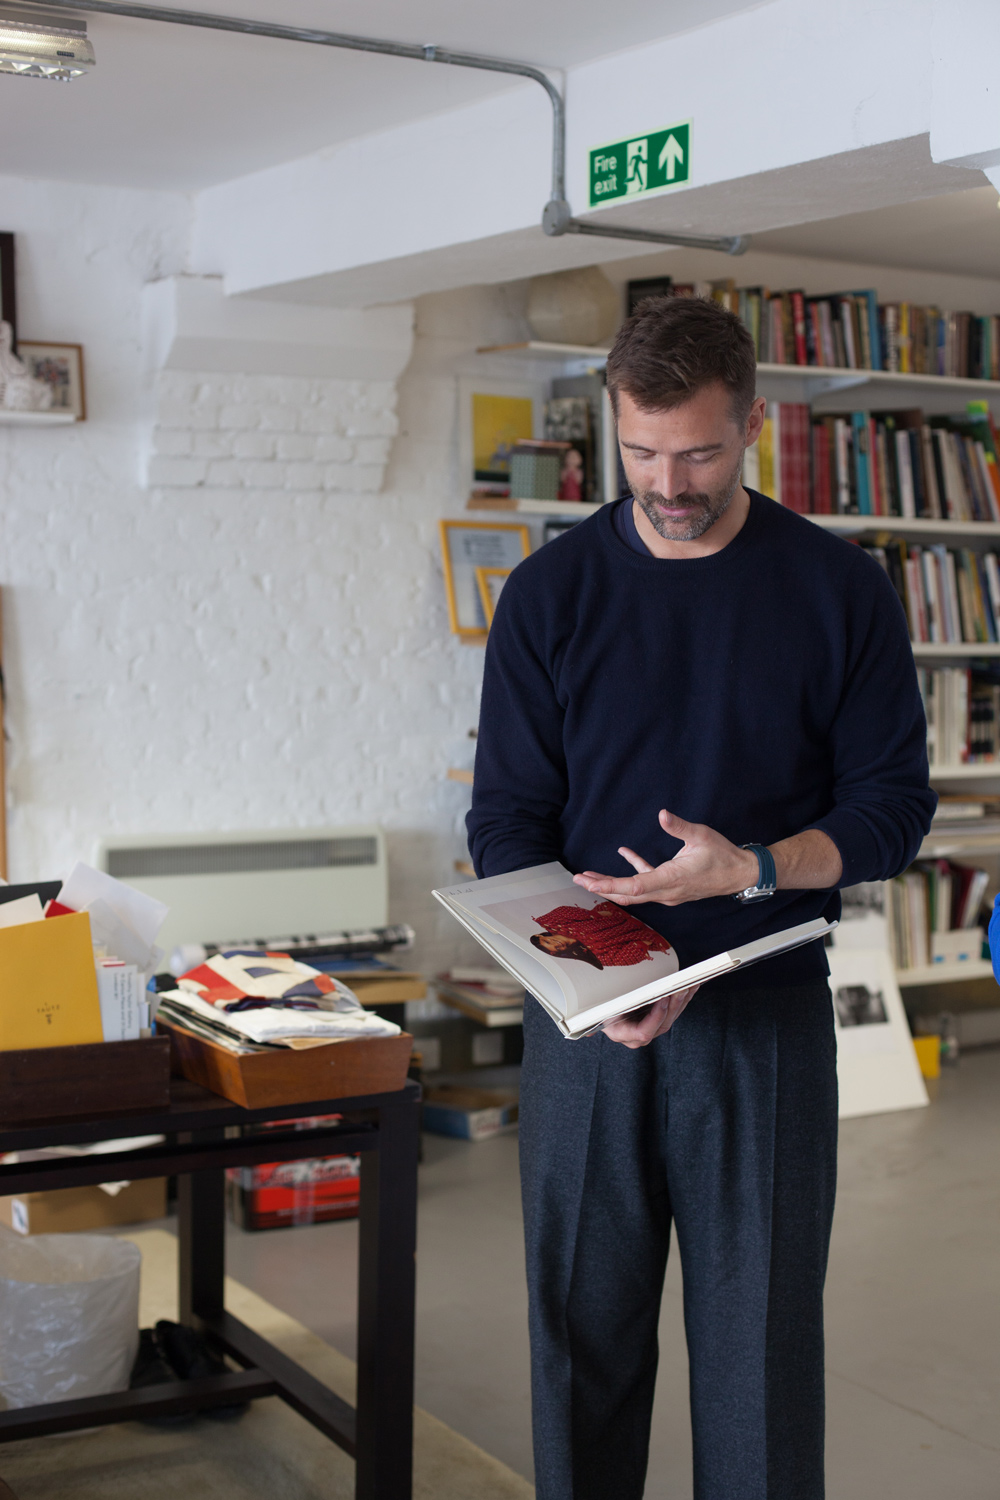 Patrick Grant by David woolfall